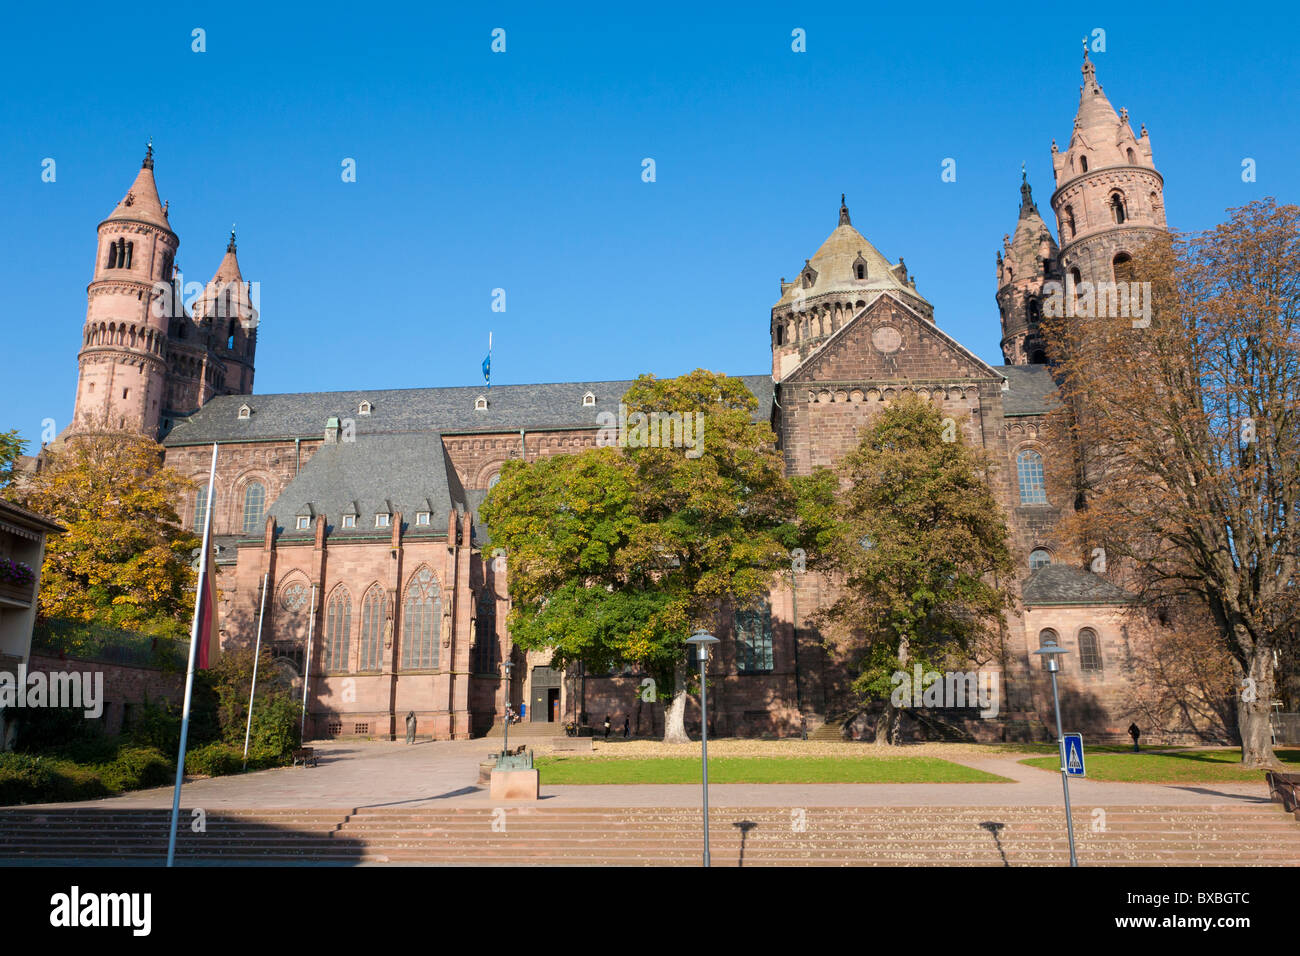 CATHEDRAL ST. PETER, KAISERDOM, DOM, WORMS,  RHINELAND-PALATINATE, GERMANY - Stock Image